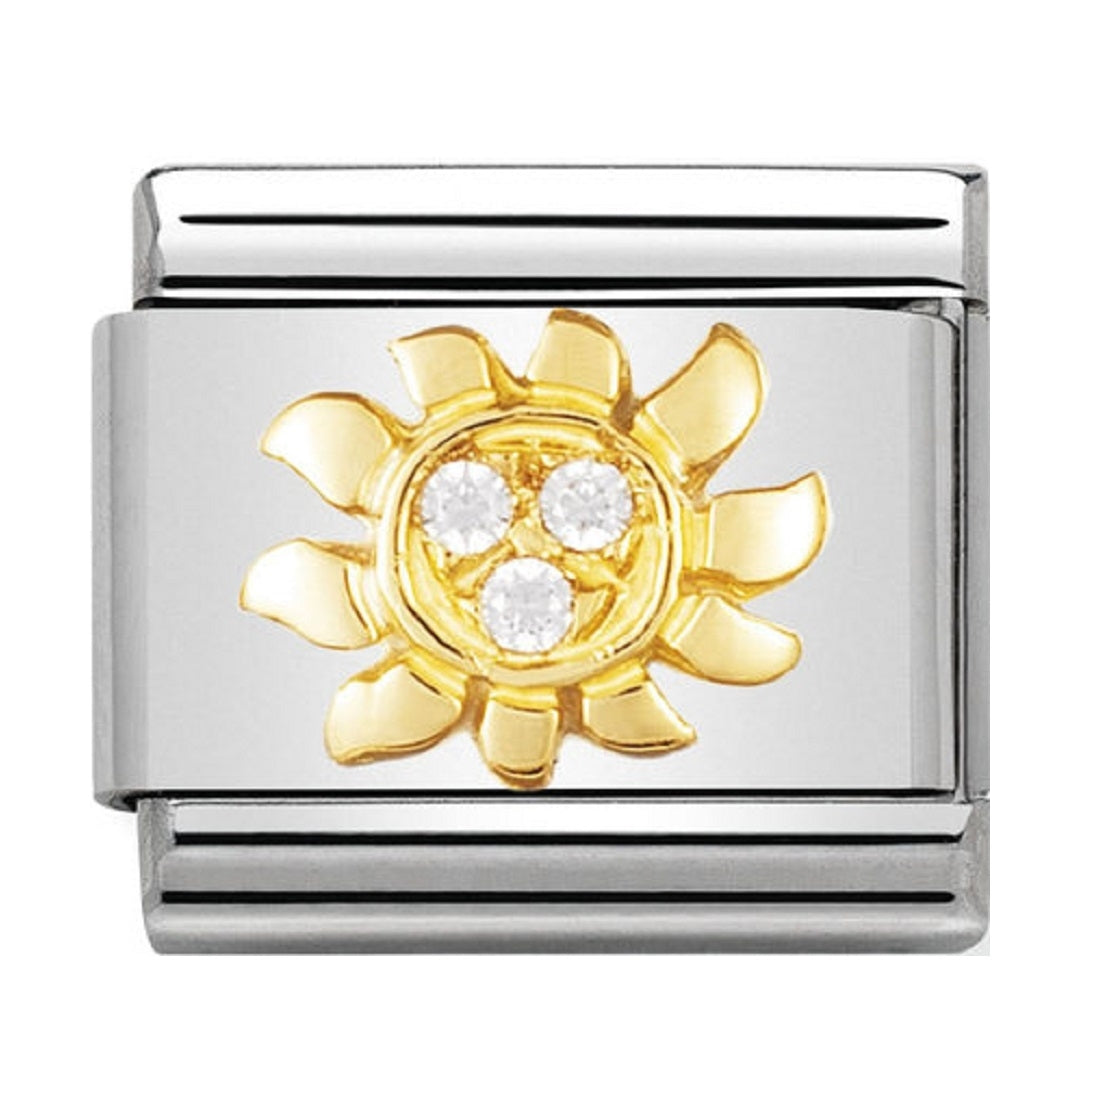 Nomination Charms 18ct Gold and CZ White Sun 030308-23. Nomination Charms  18ct Gold and CZ White Sun 030308-23 e9dbc23966fa